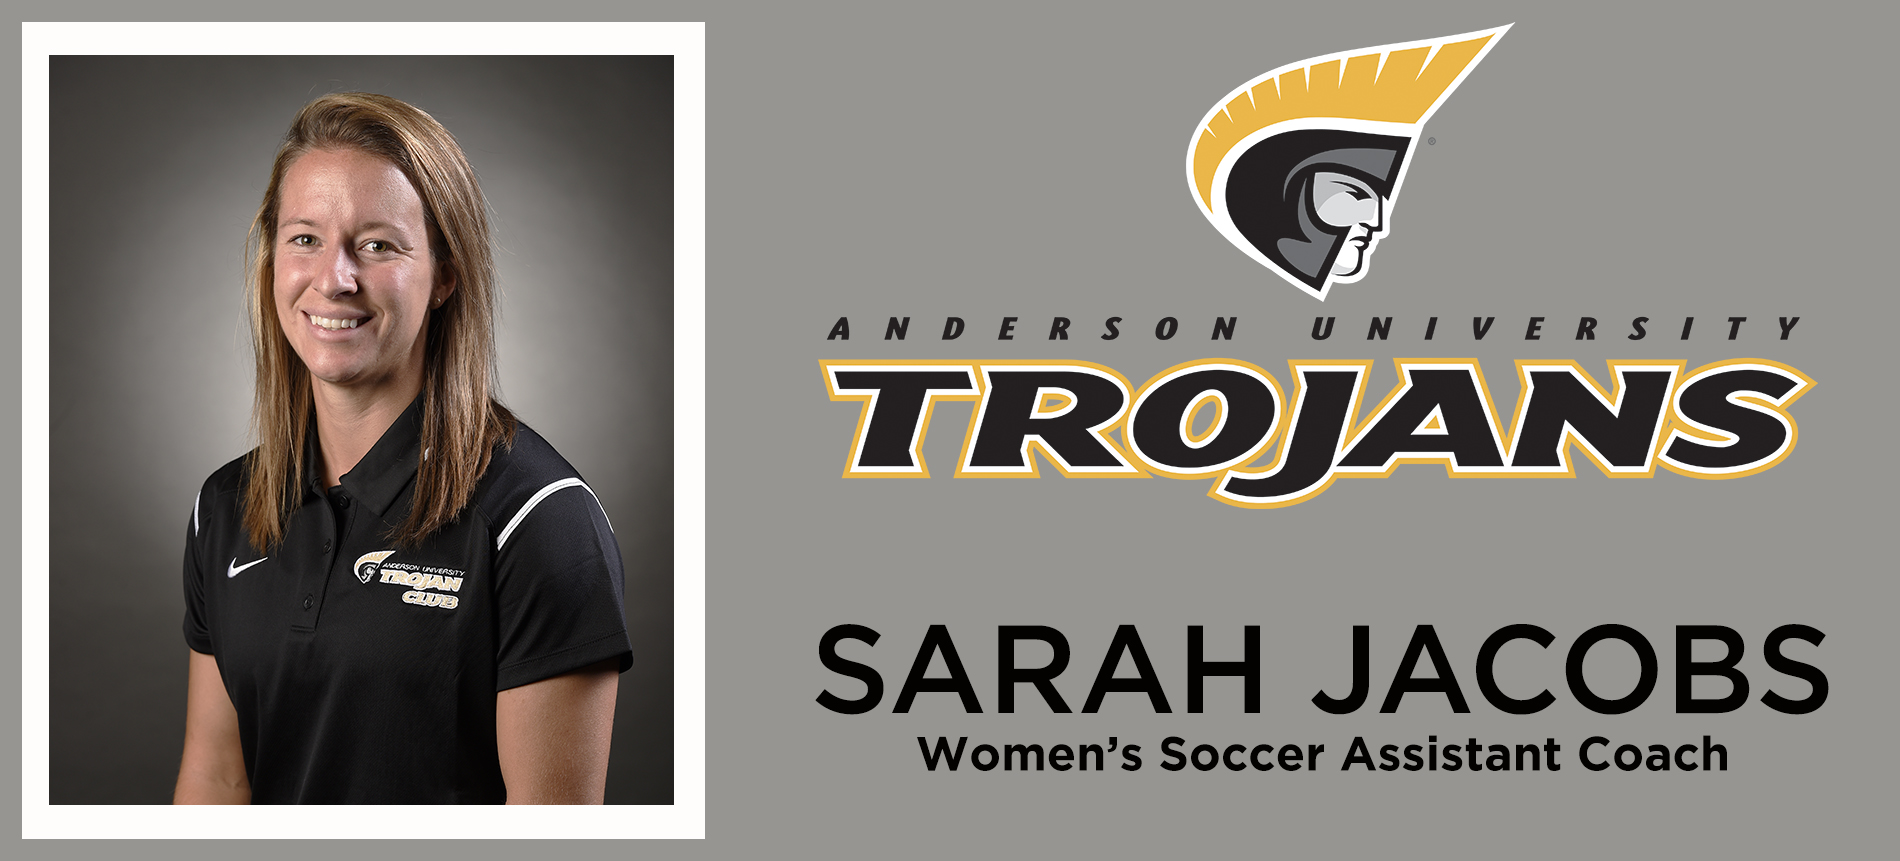 Jacobs Named Women's Soccer Assistant Coach